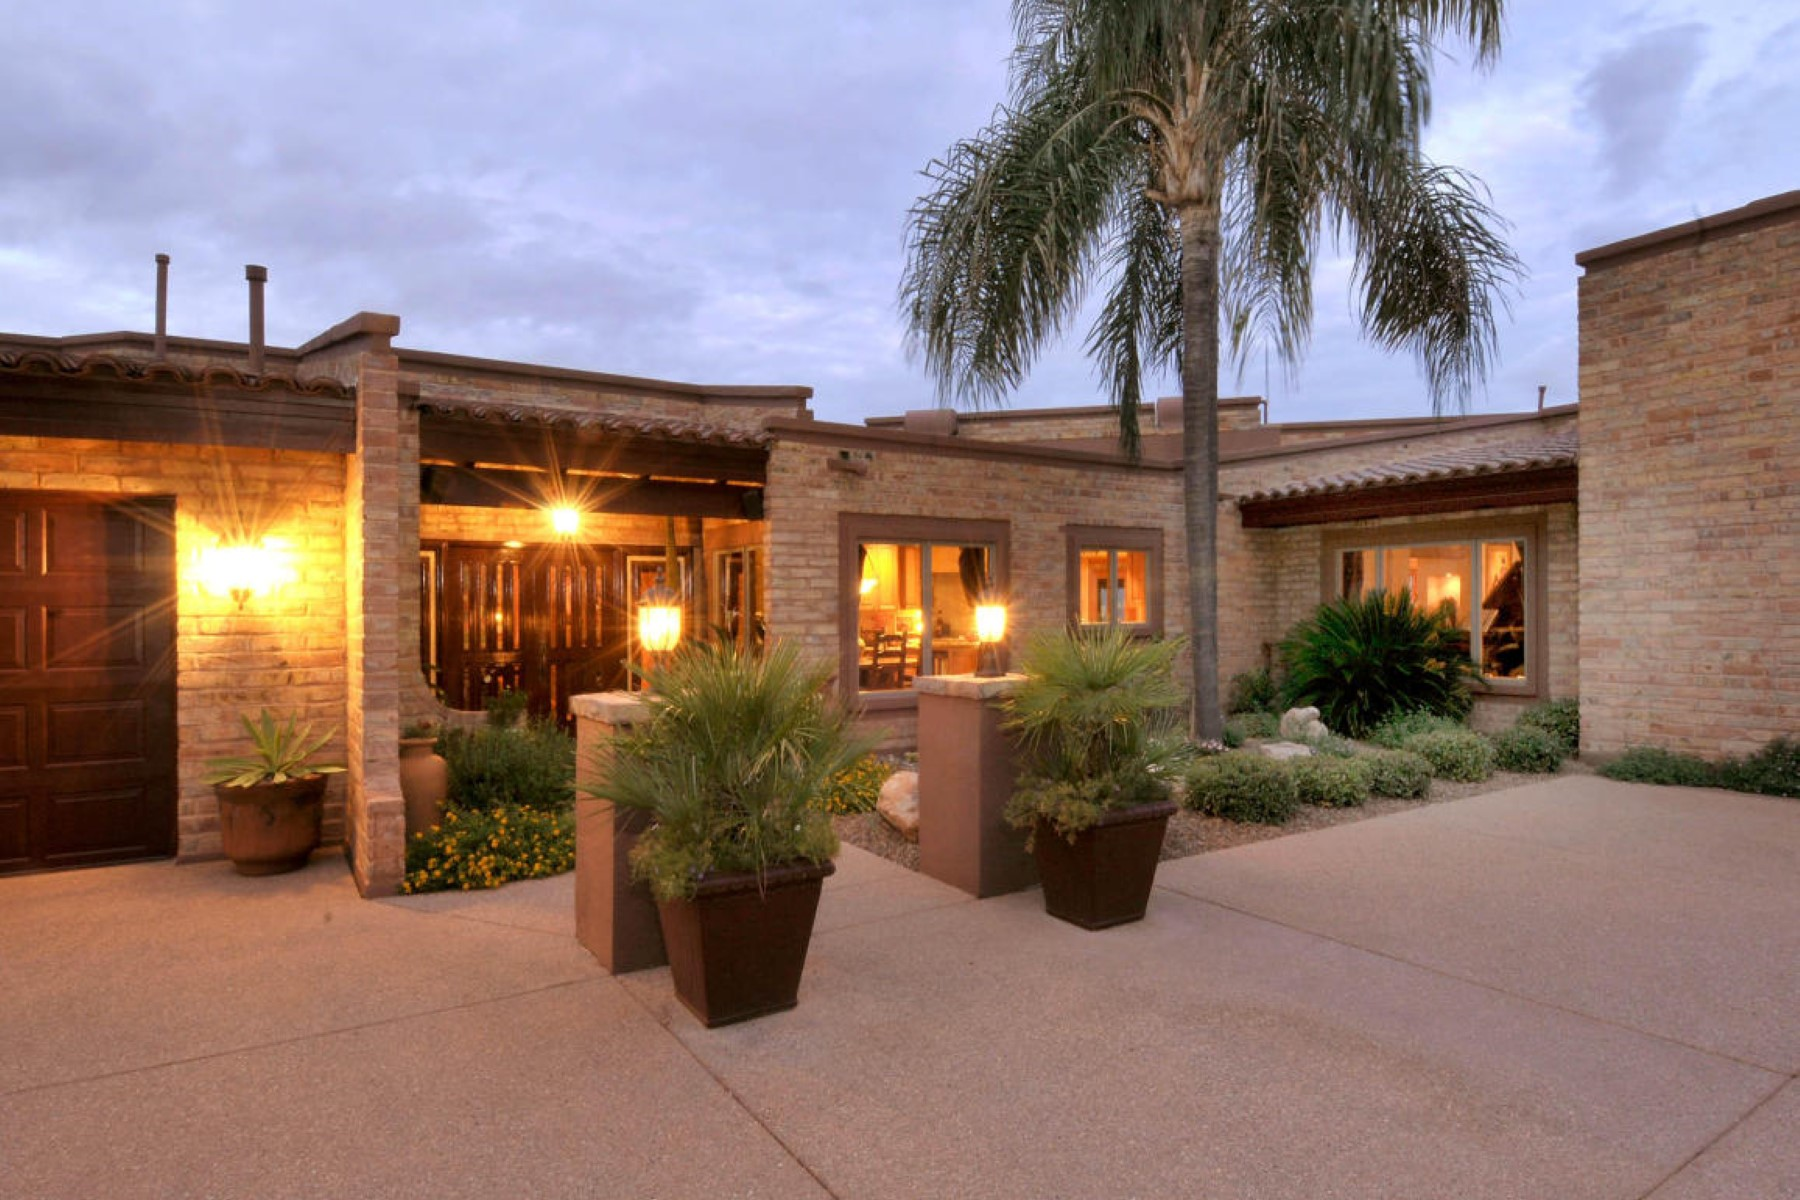 一戸建て のために 売買 アット Stunning one-of-a-kind classic Ultra-Custom Desert soft Contemporary 5000 E Oakmont Drive Tucson, アリゾナ, 85718 アメリカ合衆国